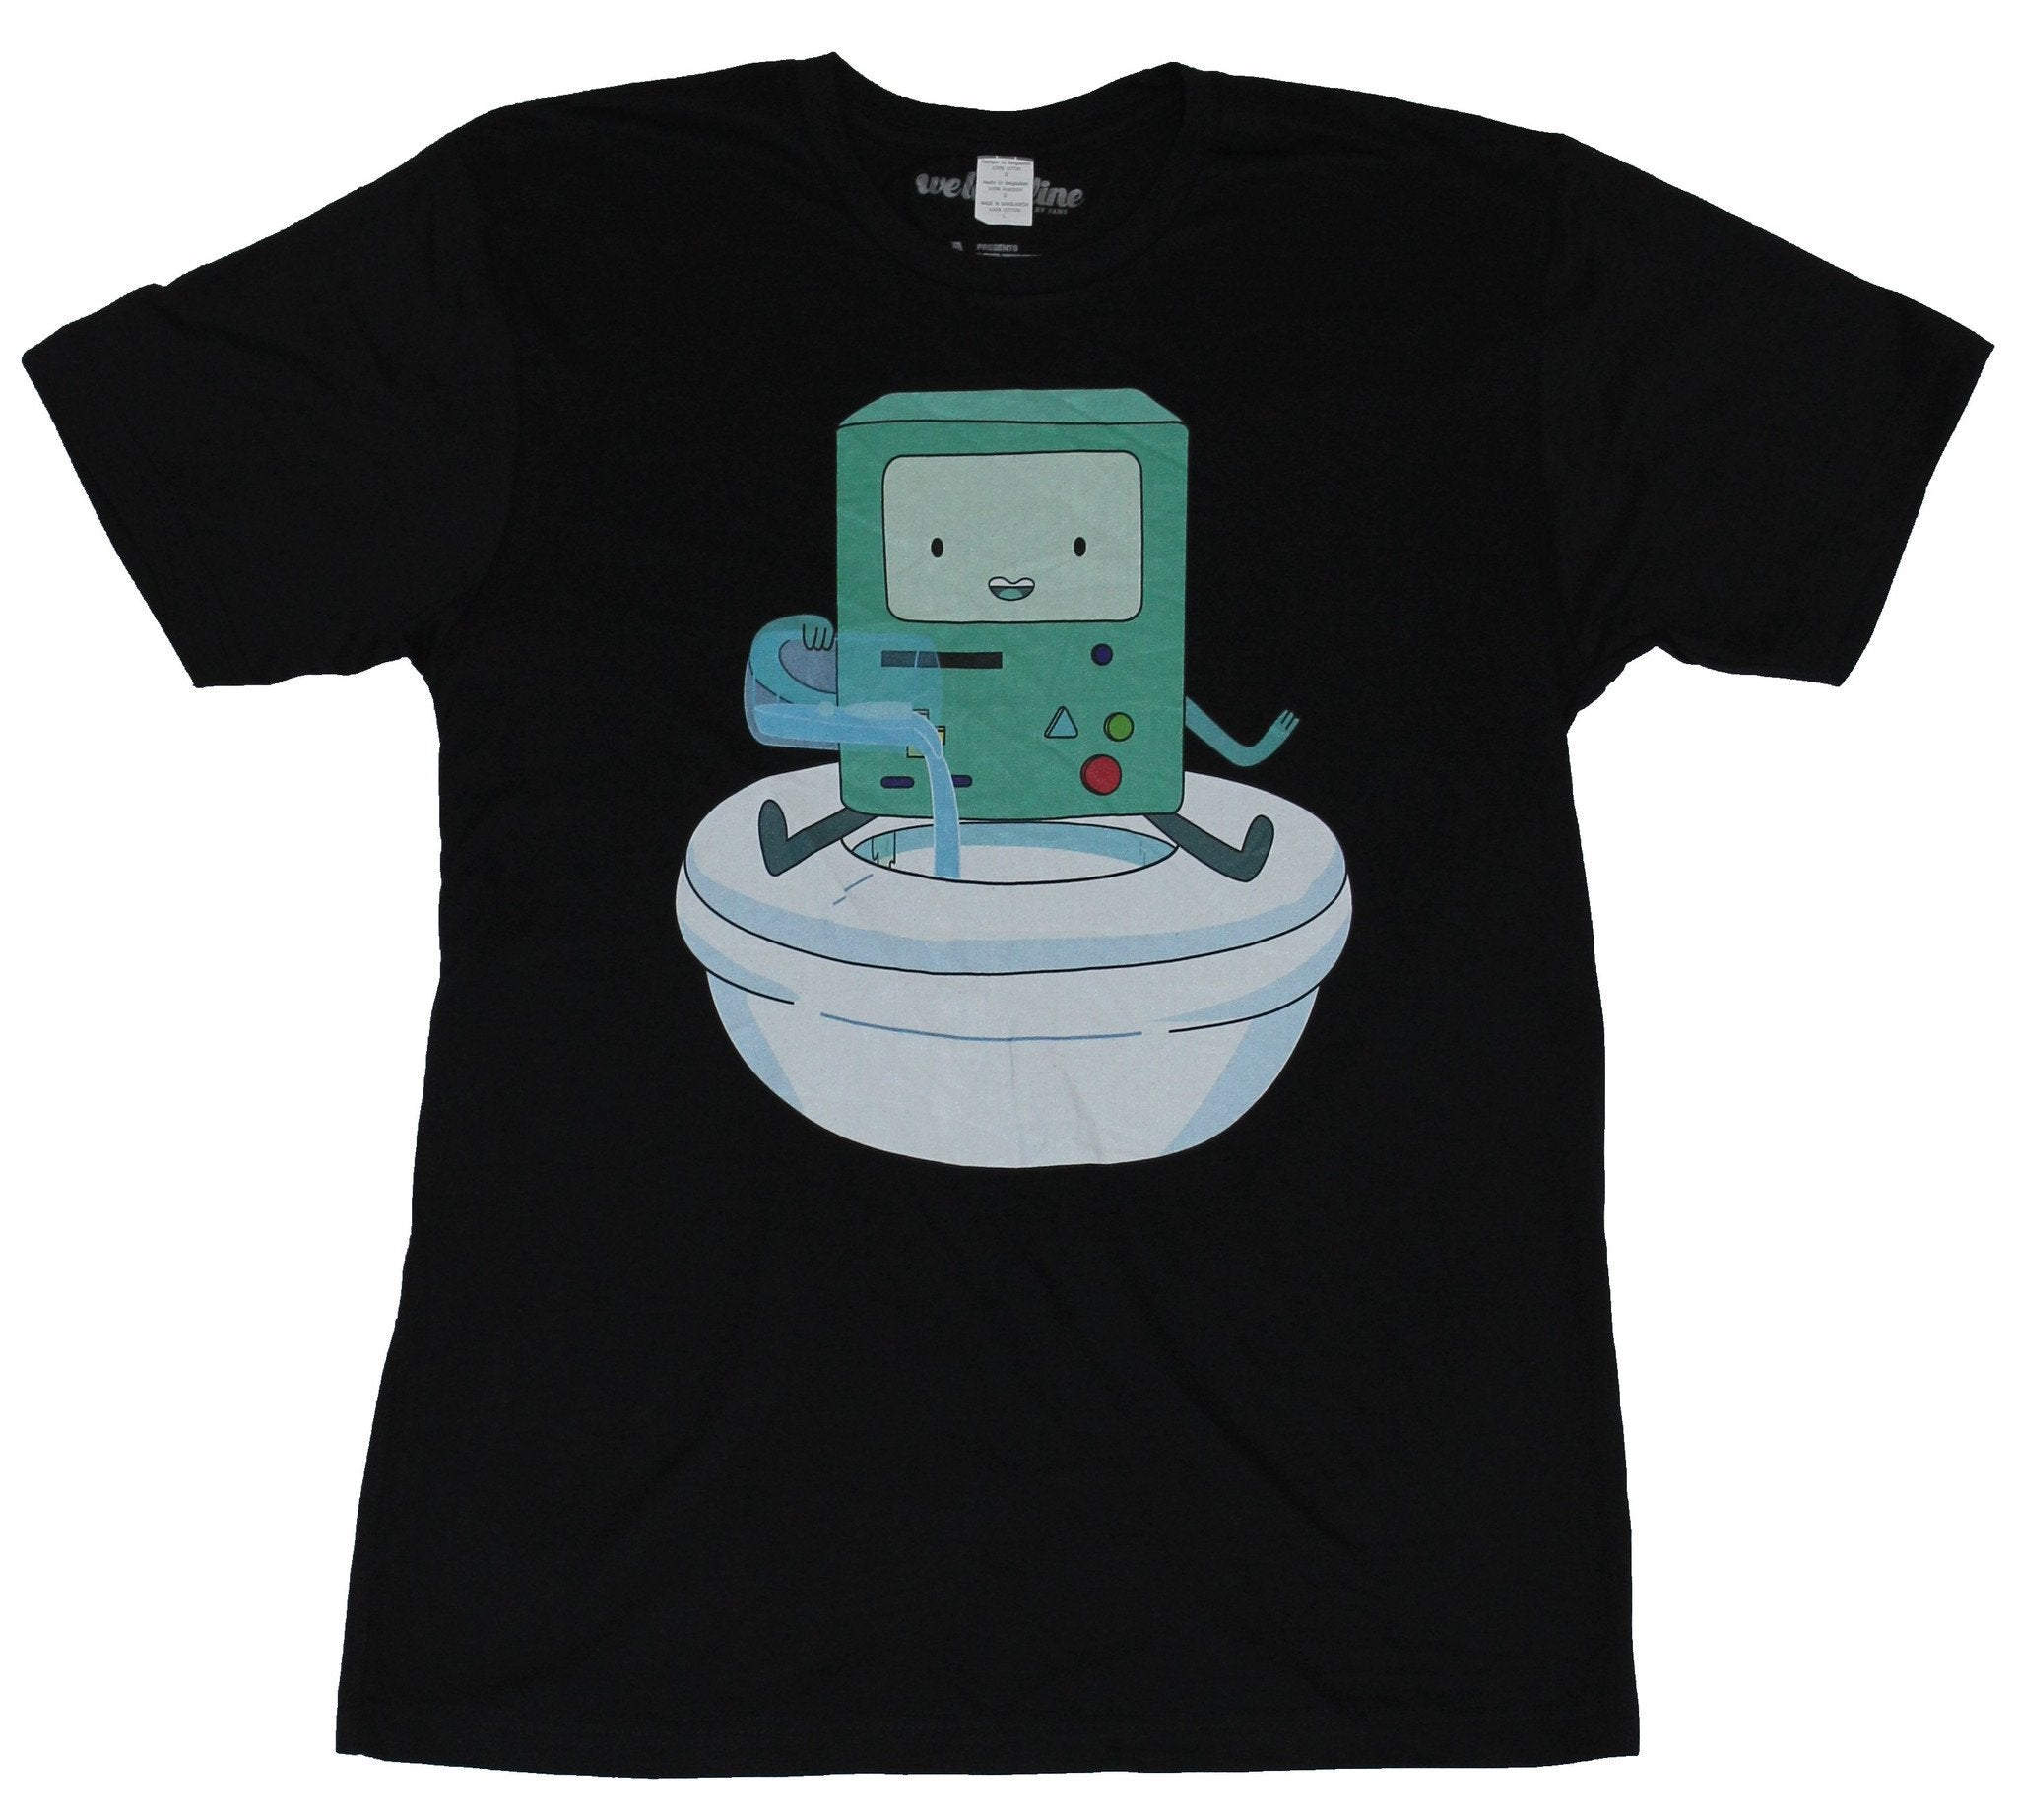 Adventure Time Mens T-Shirt - BMO Pouring Water in A White Bowl Image